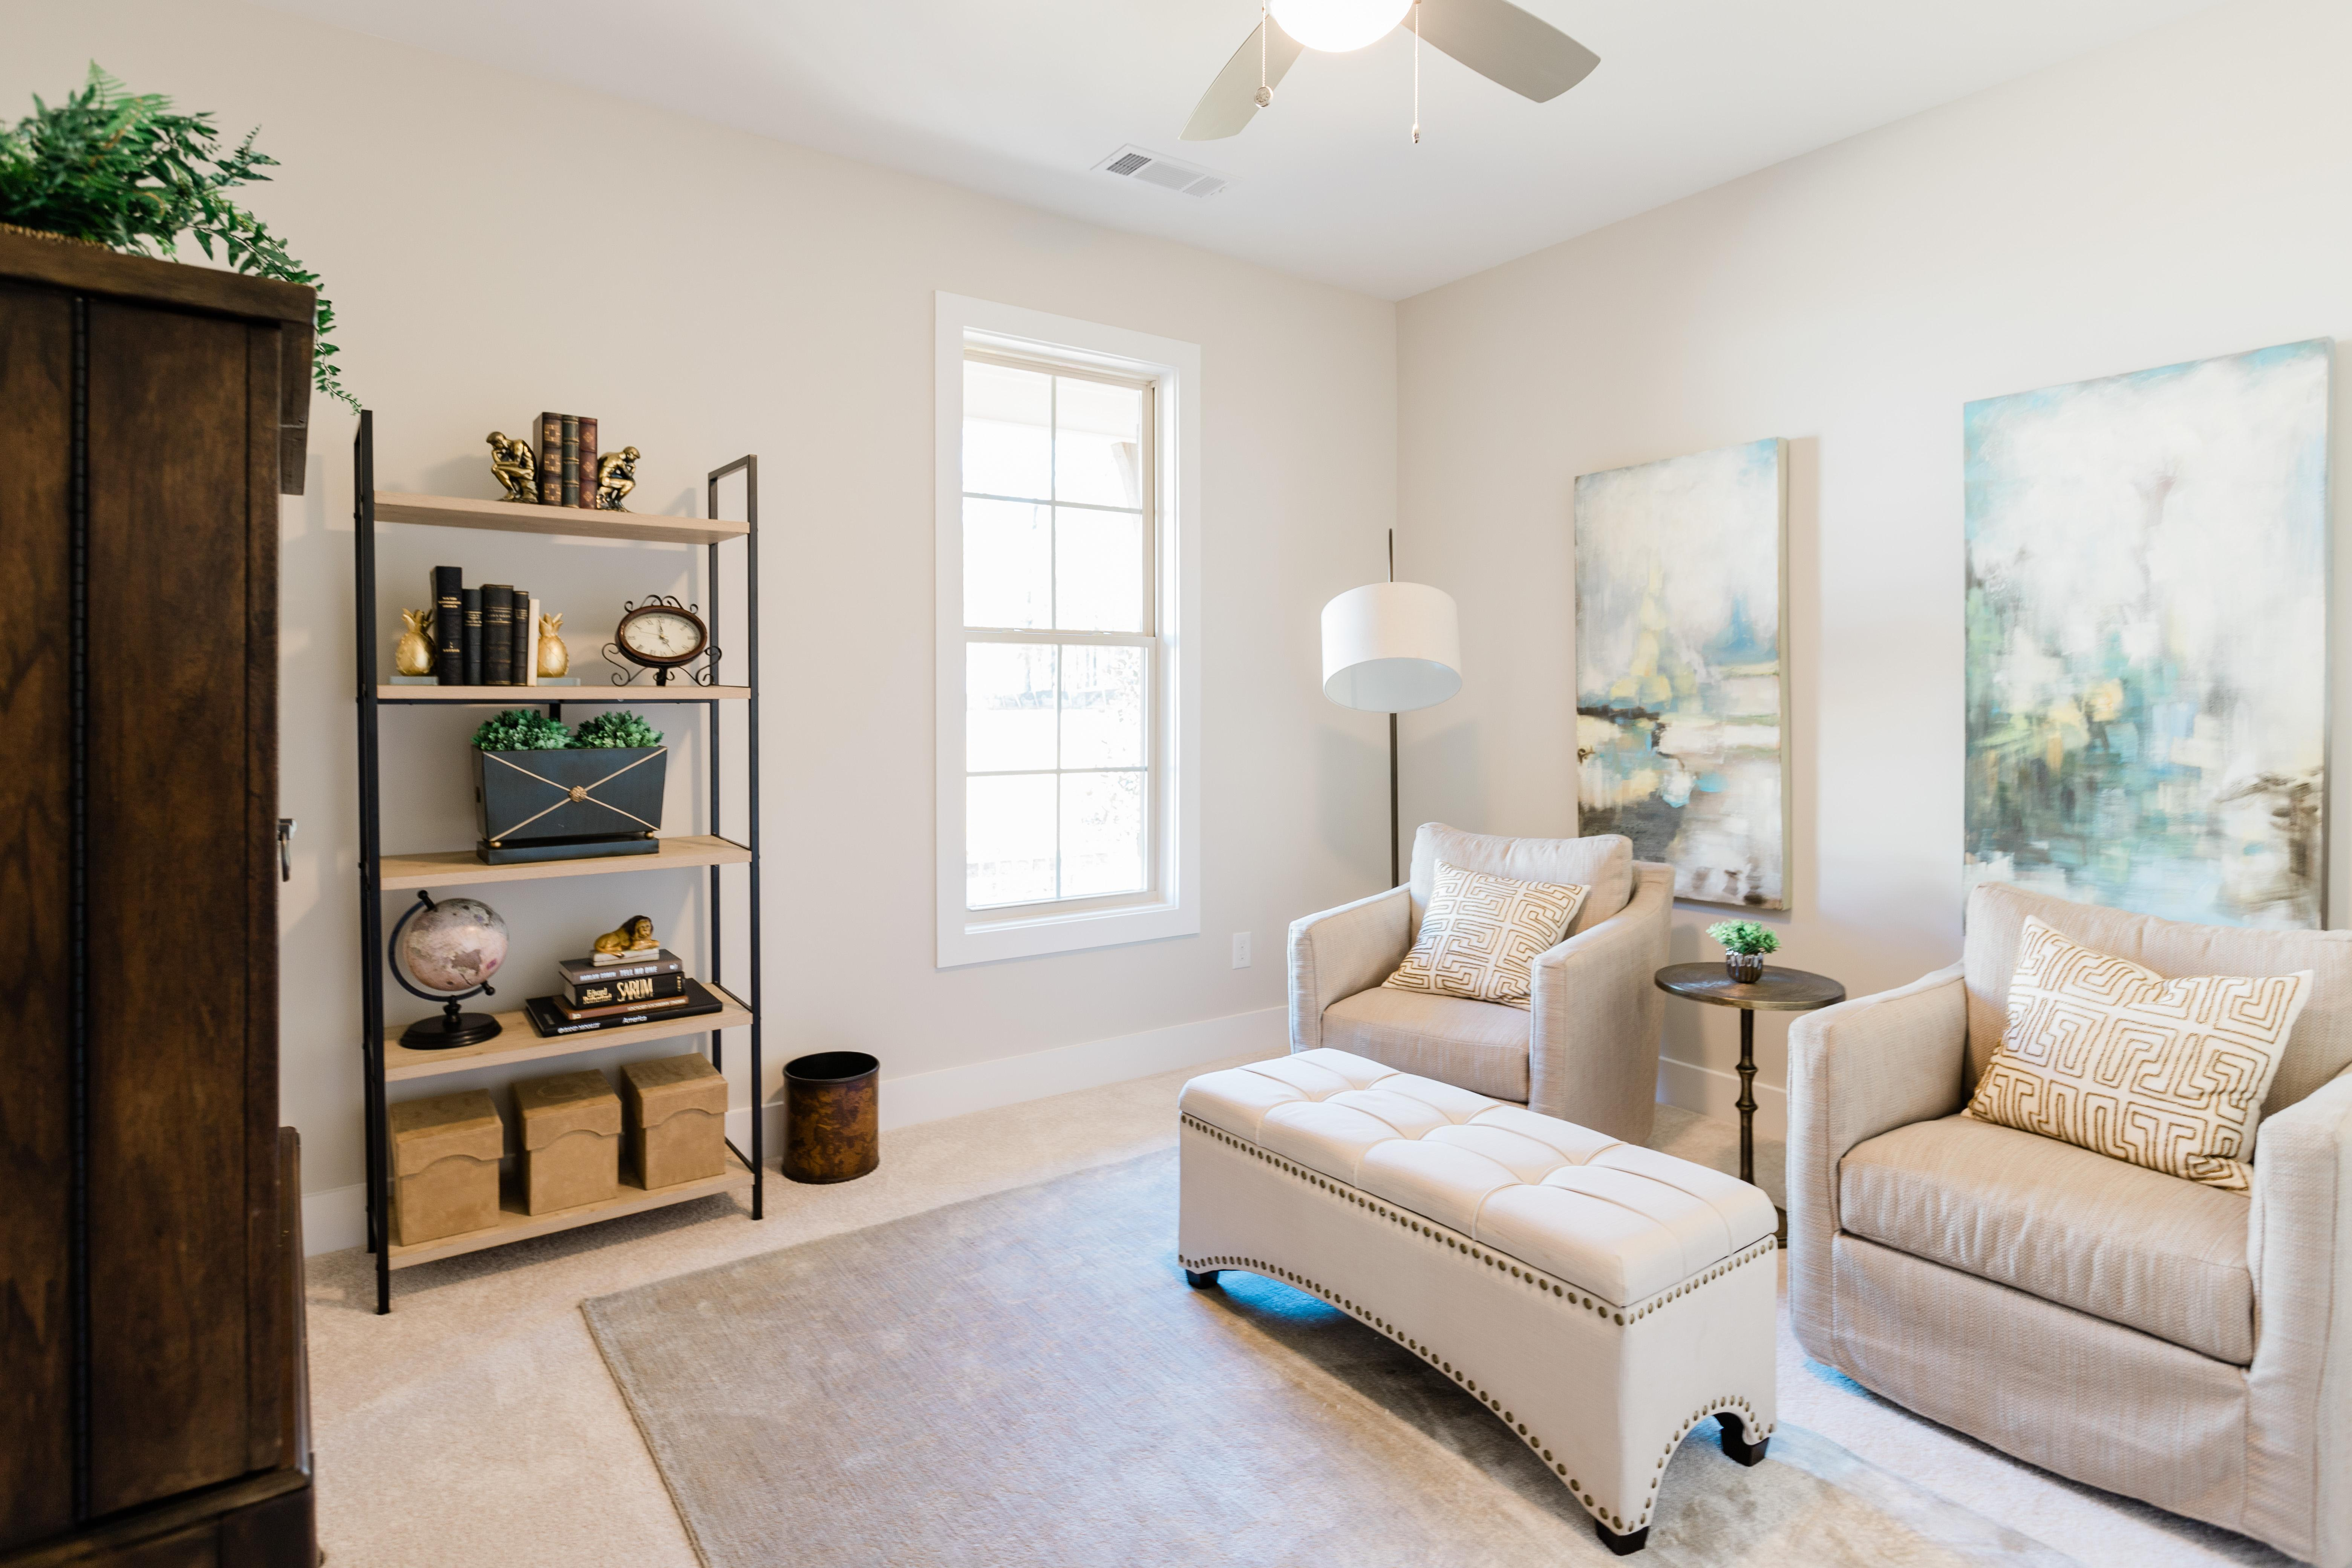 Living Area featured in the Lawden D 4/3 By Holland Homes in Auburn-Opelika, AL